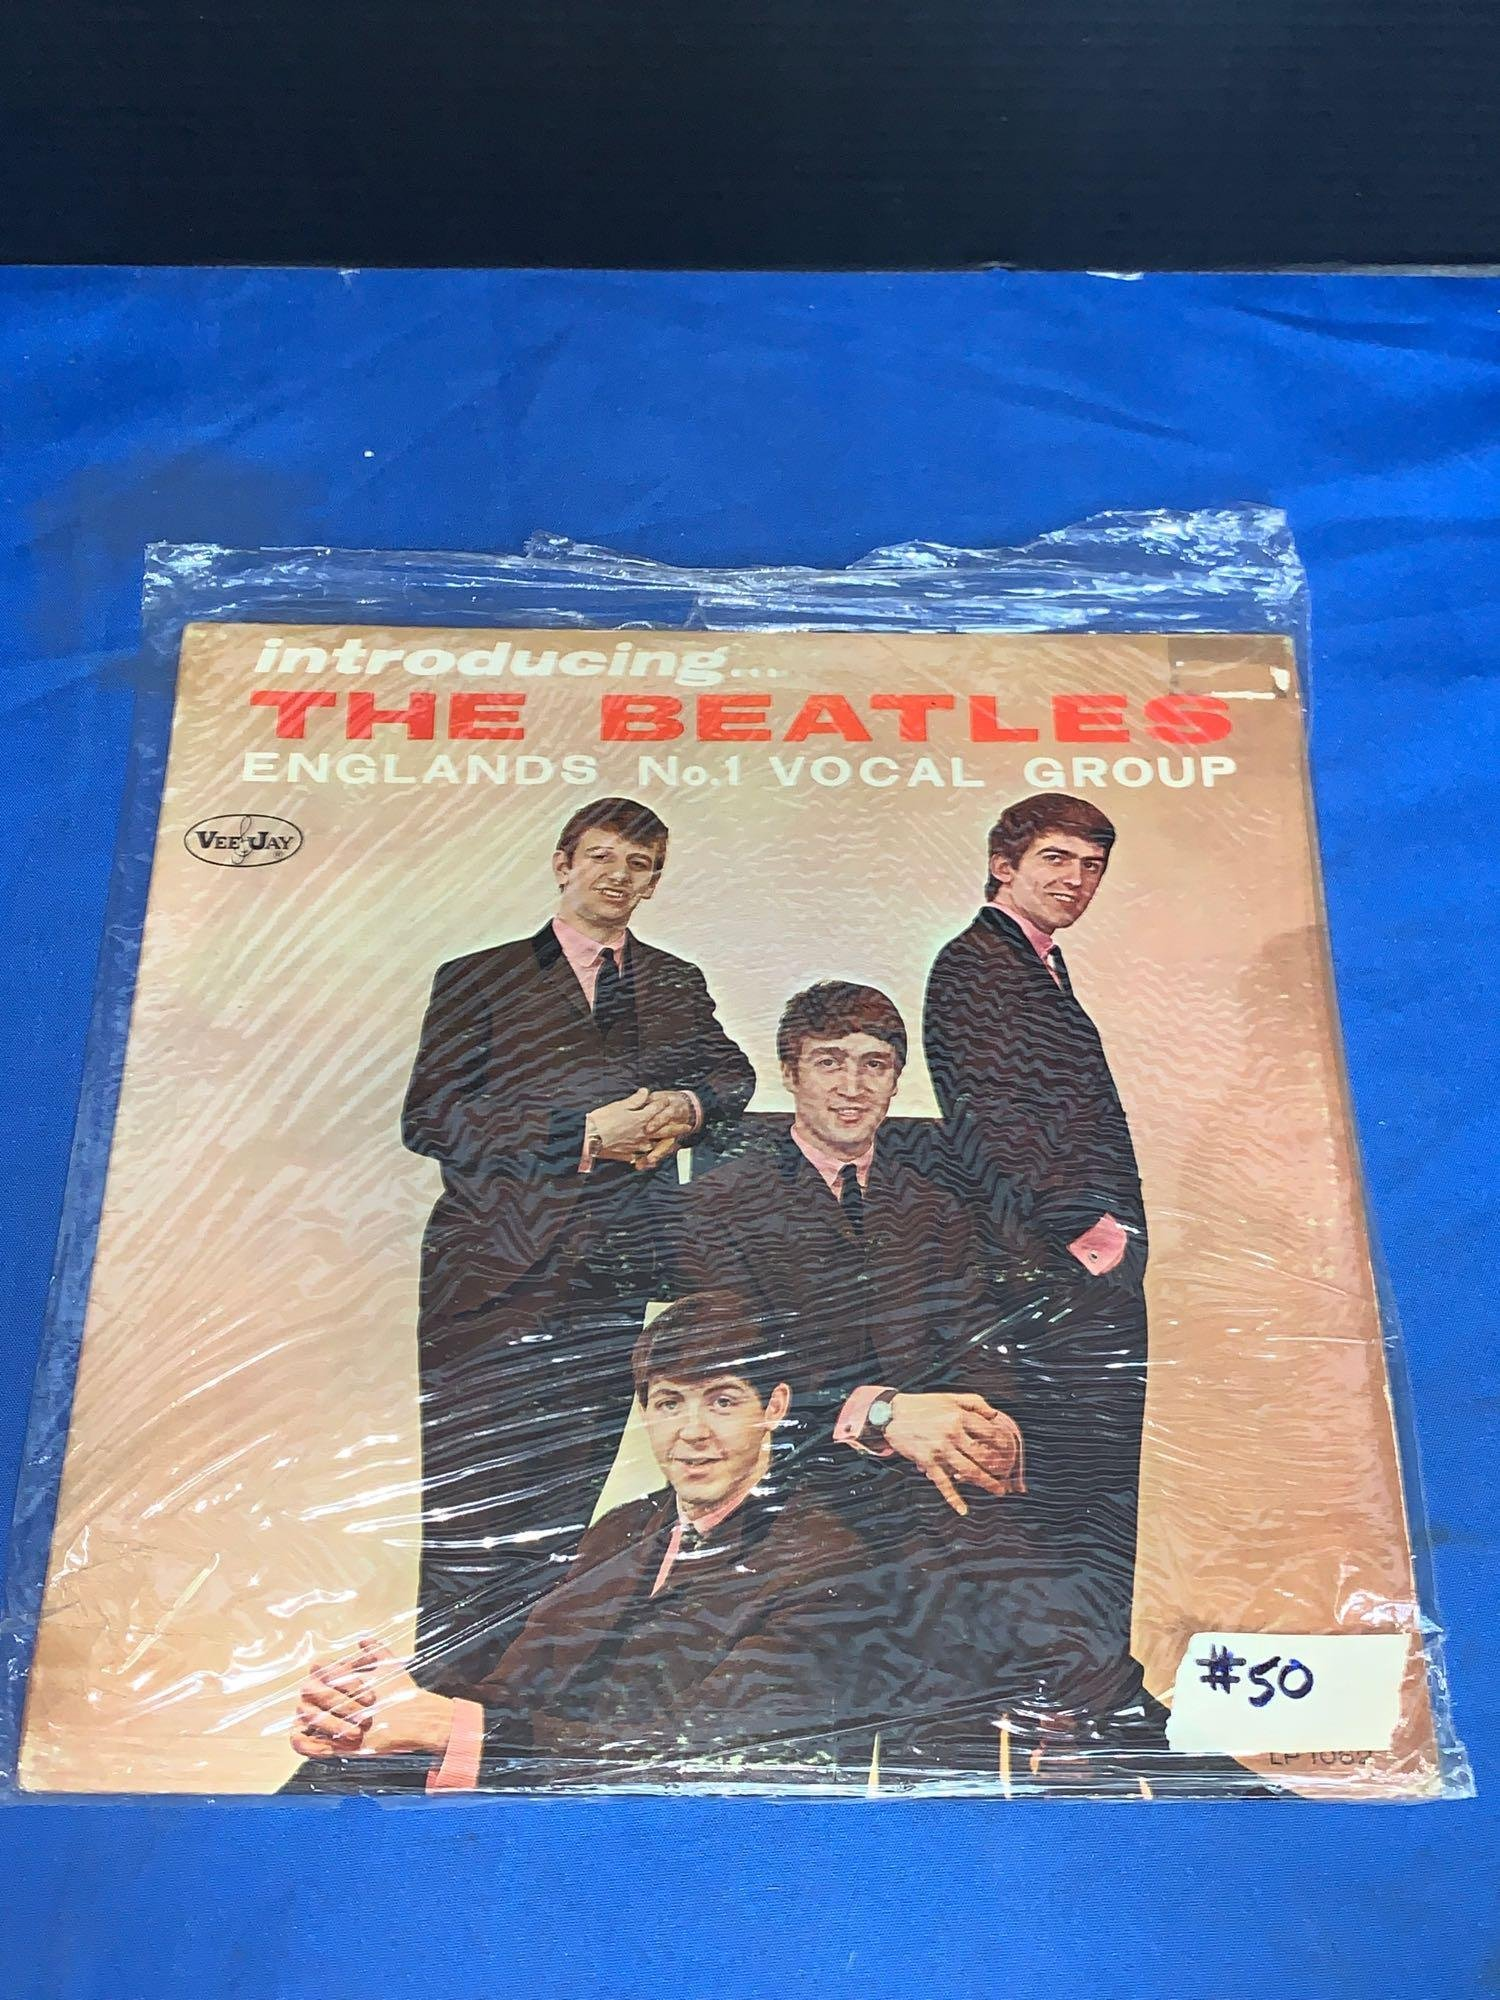 Record: Introducing The Beatles, VeeJay VJLP1062